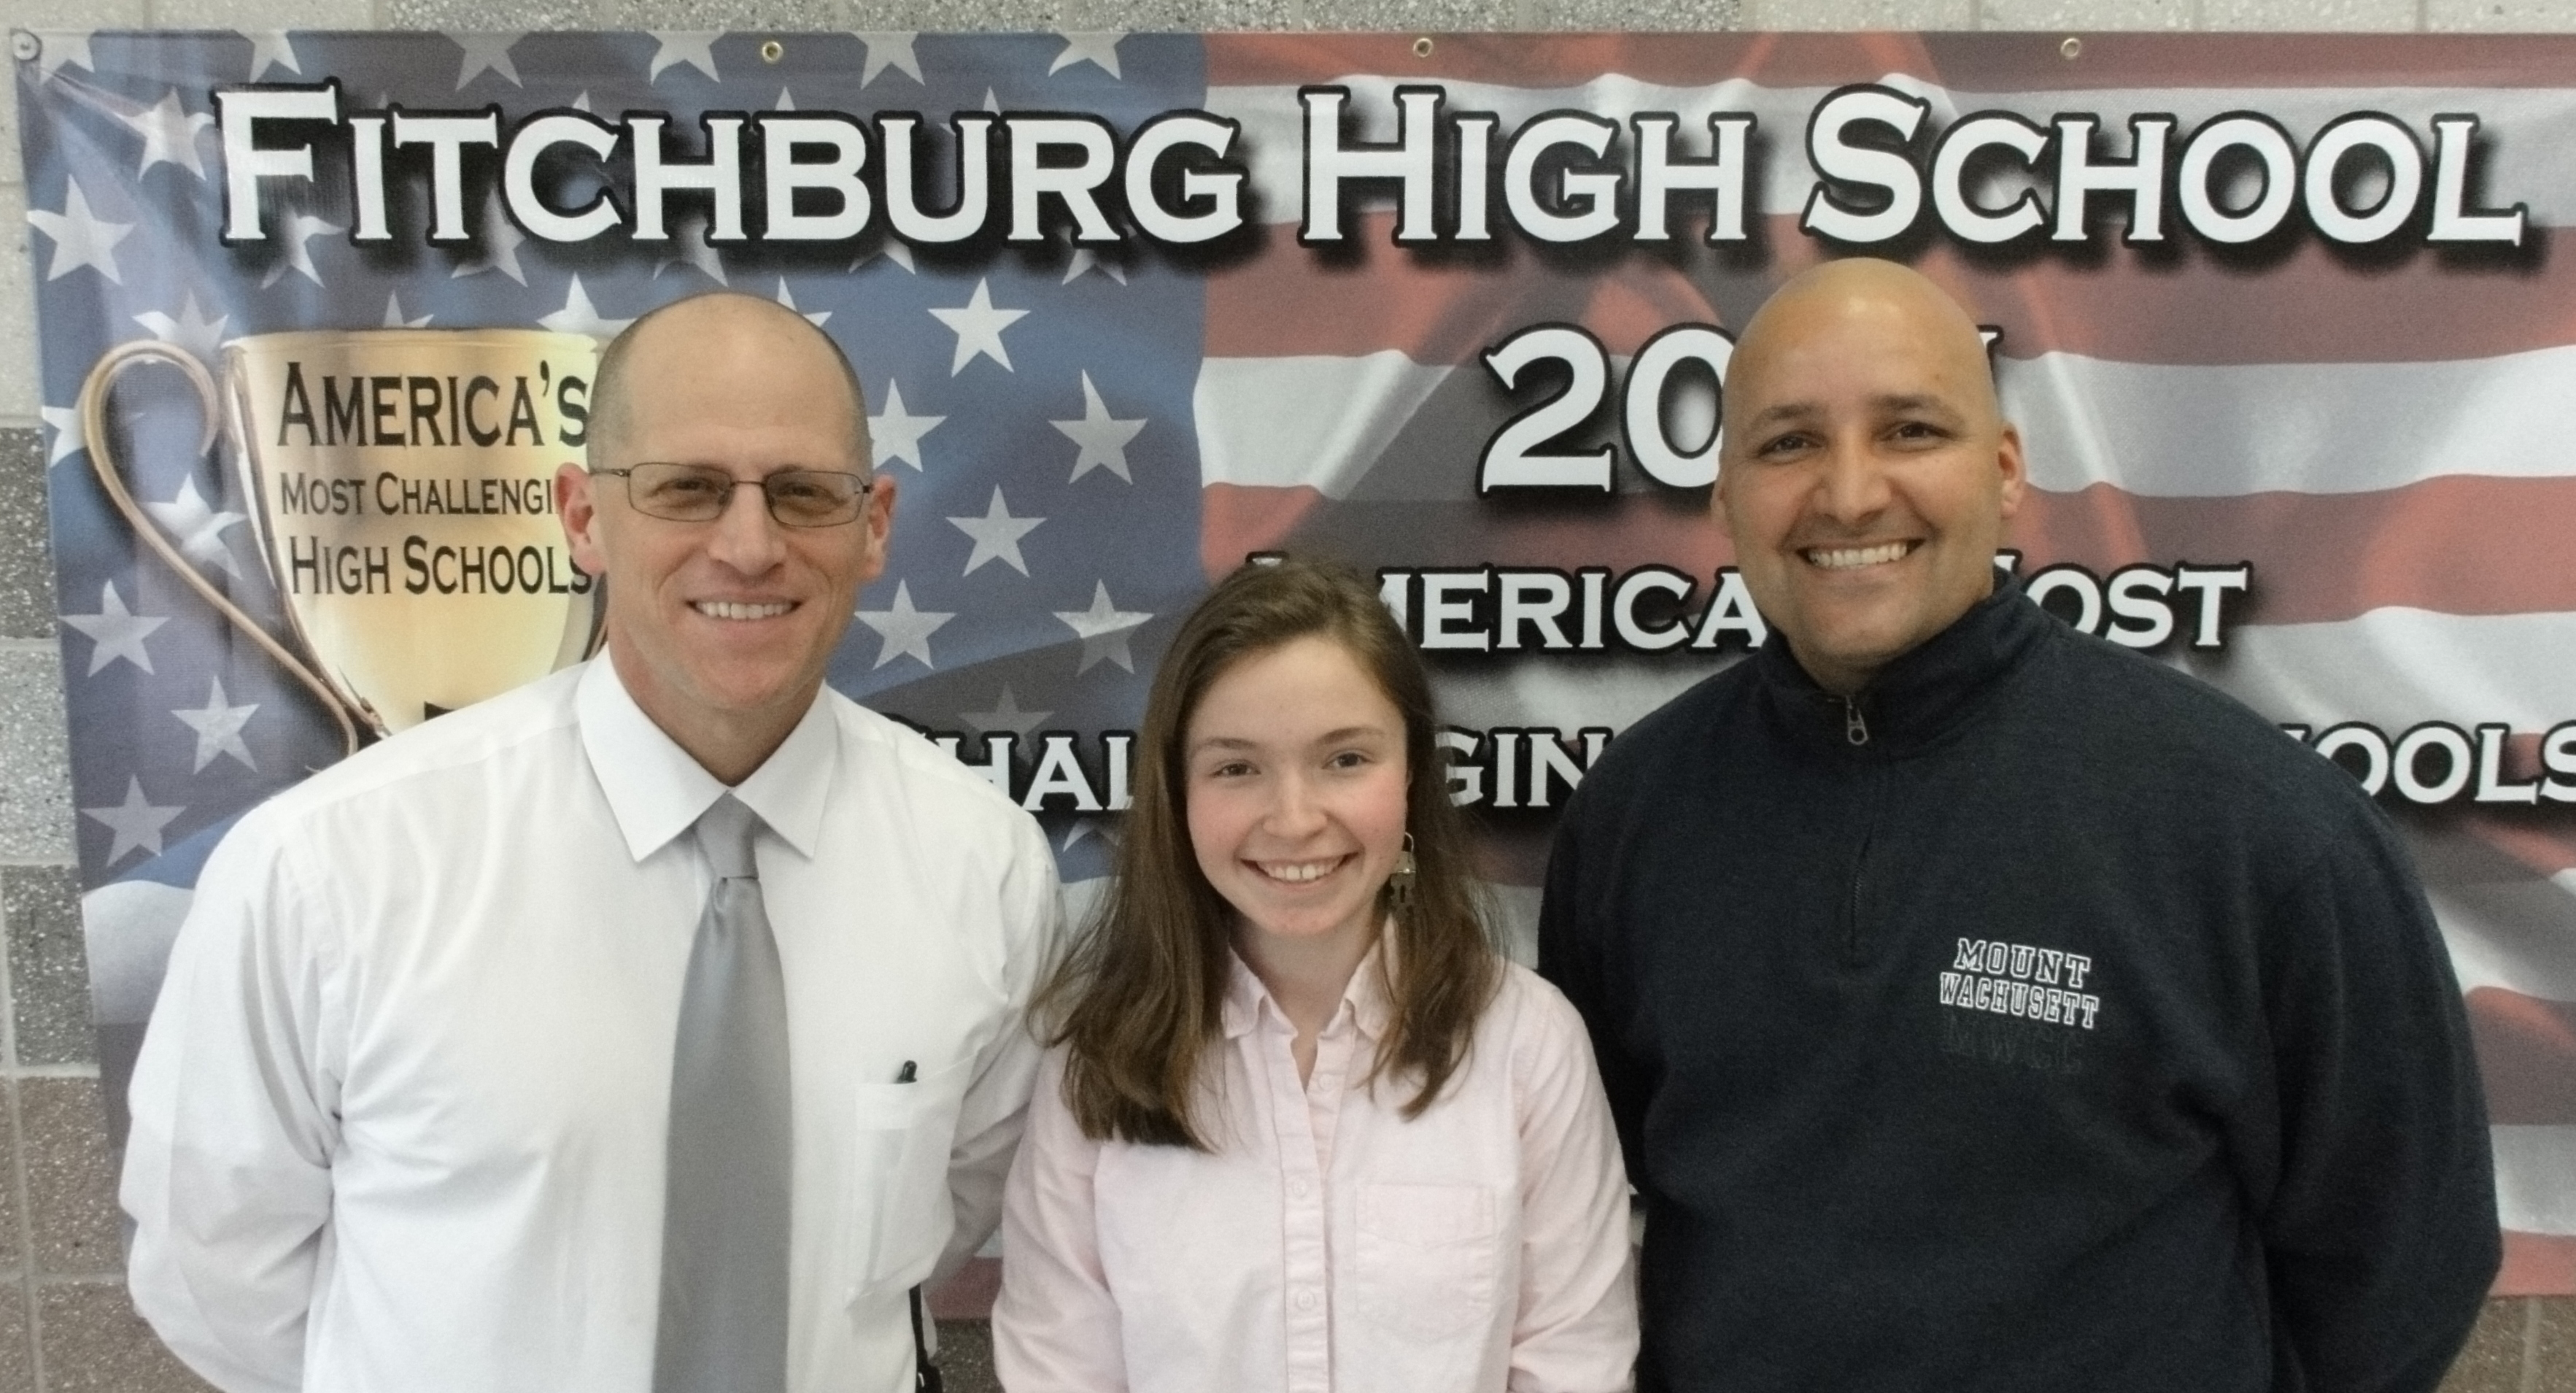 Fitchburg High School Principal Jeremy Roche, left, and Victor Rojas, Assistant Director of the GEAR UP program, right, with scholar Elizabeth Moison